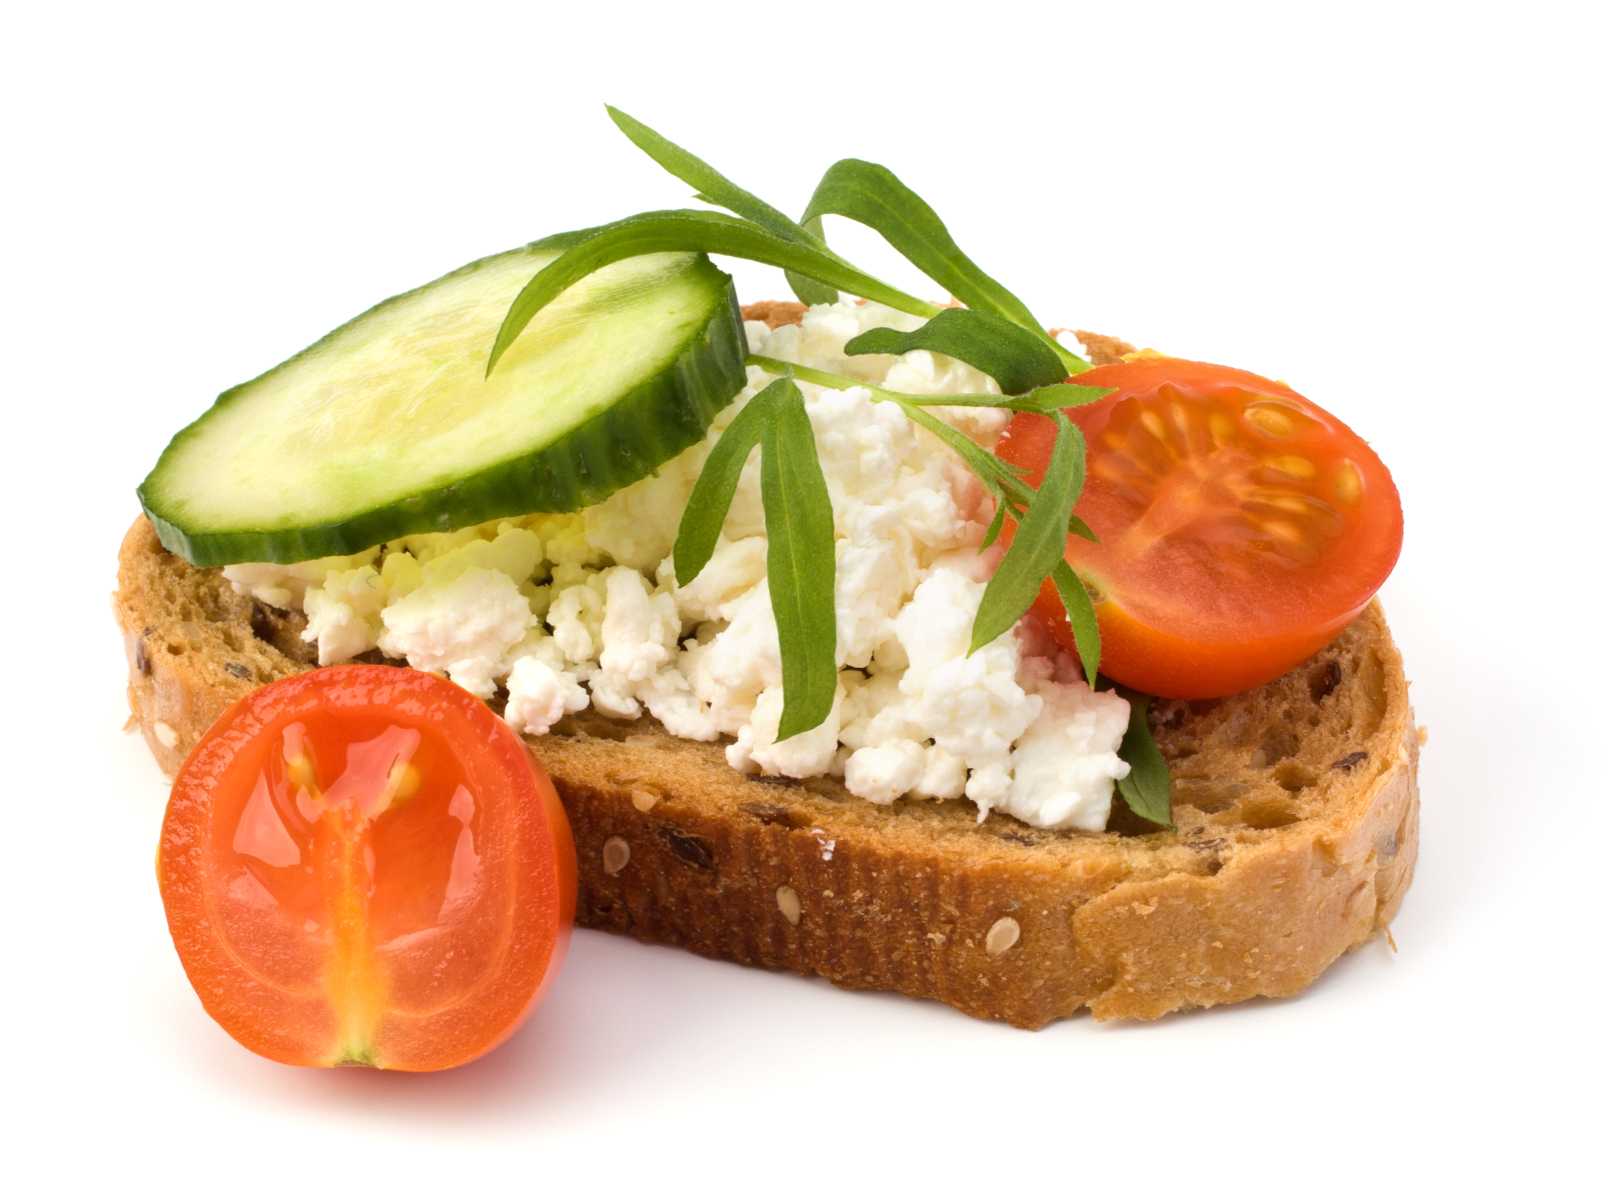 A slice of toast topped with ricotta and veggies